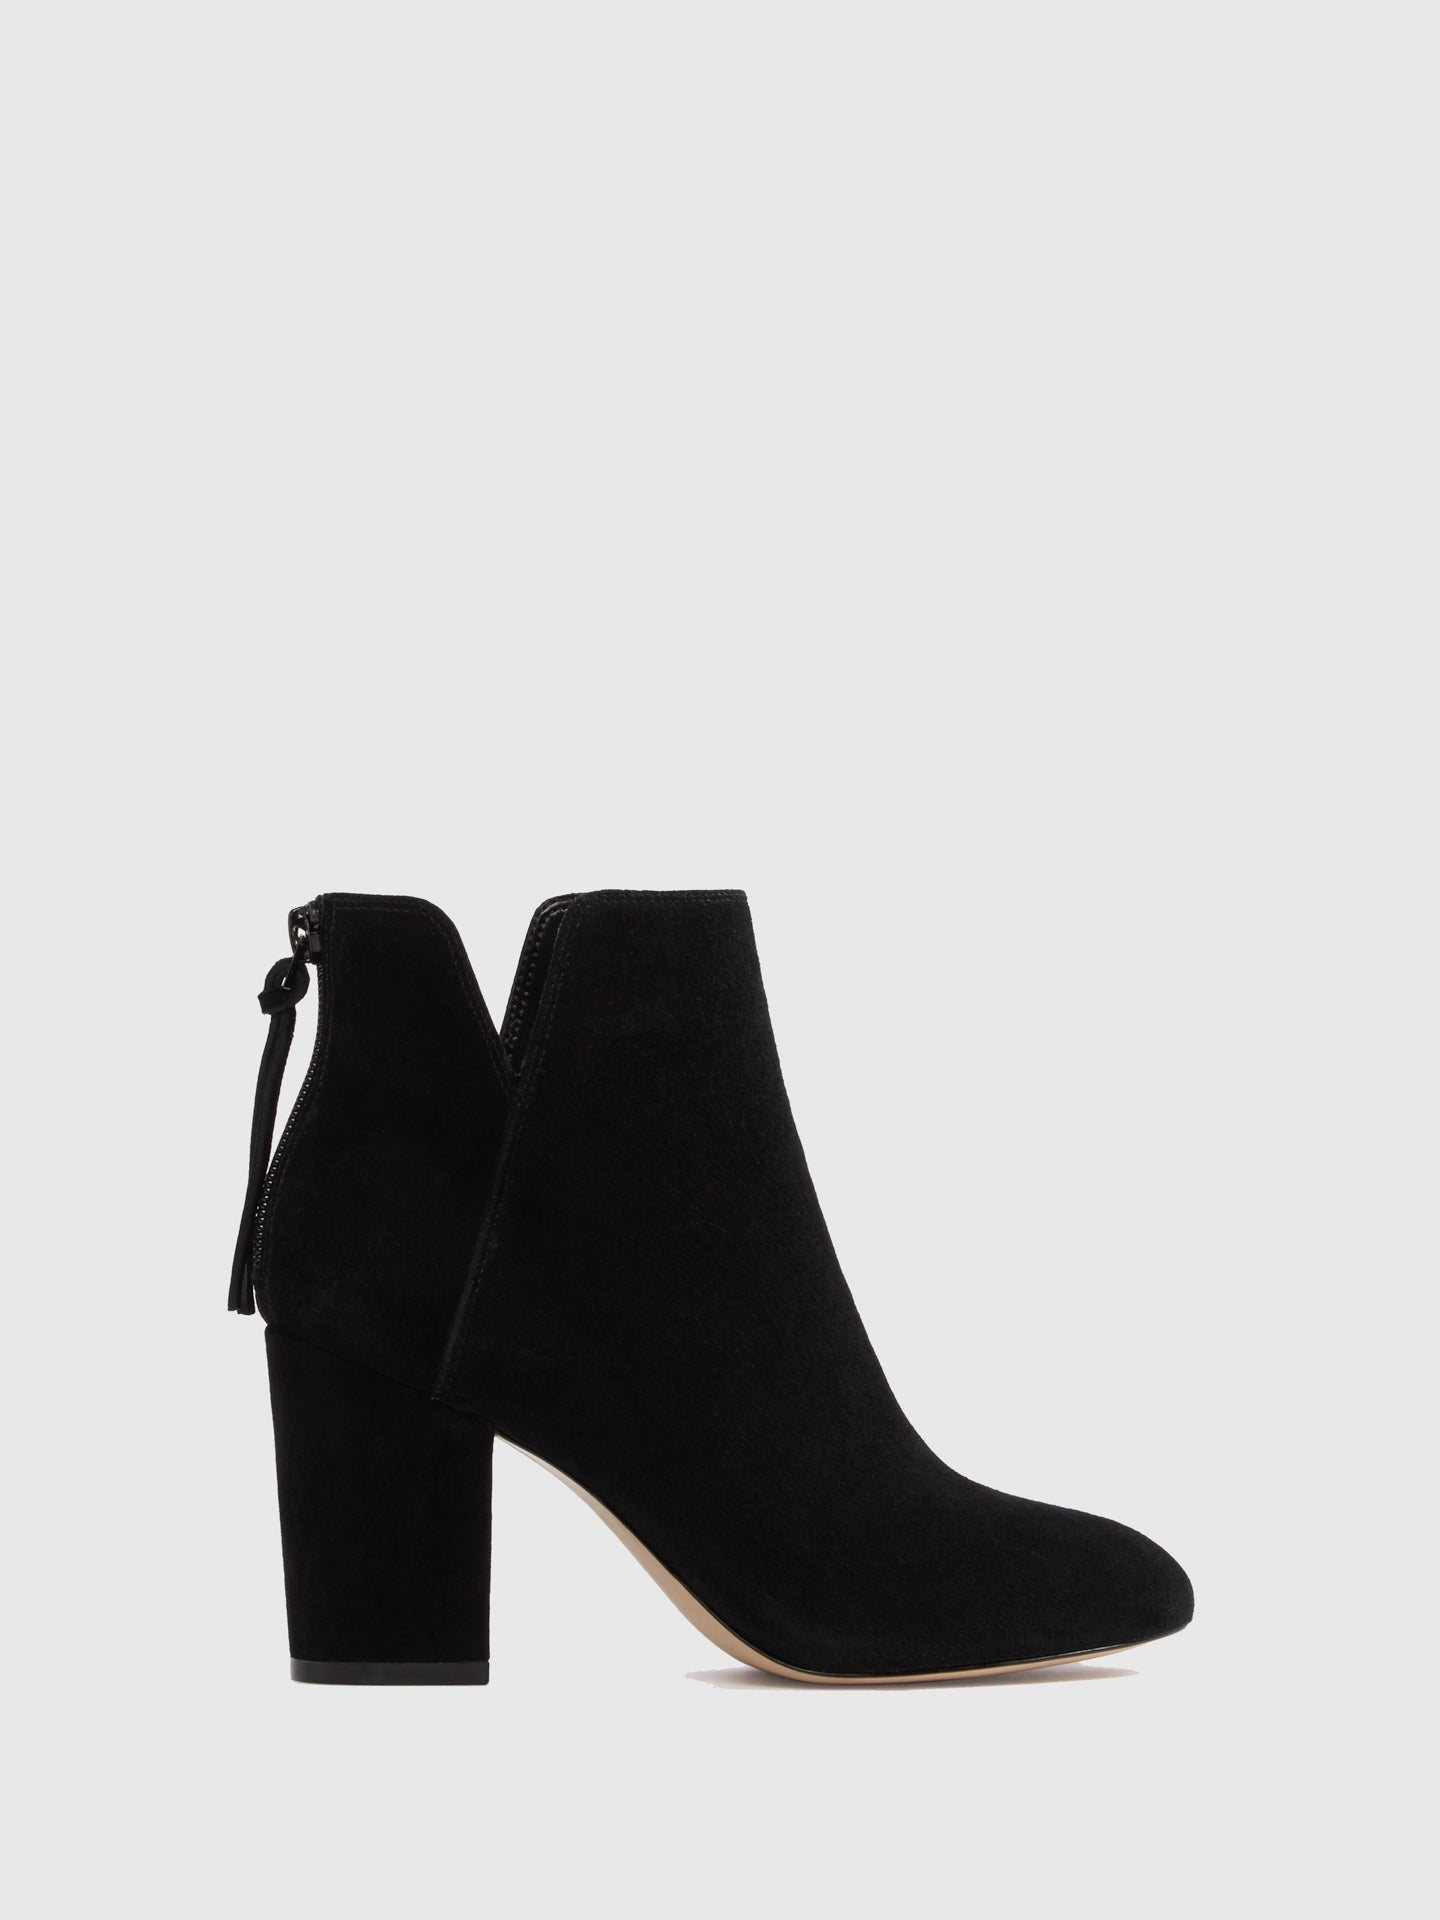 Aldo Black Suede Zip Up Ankle Boots